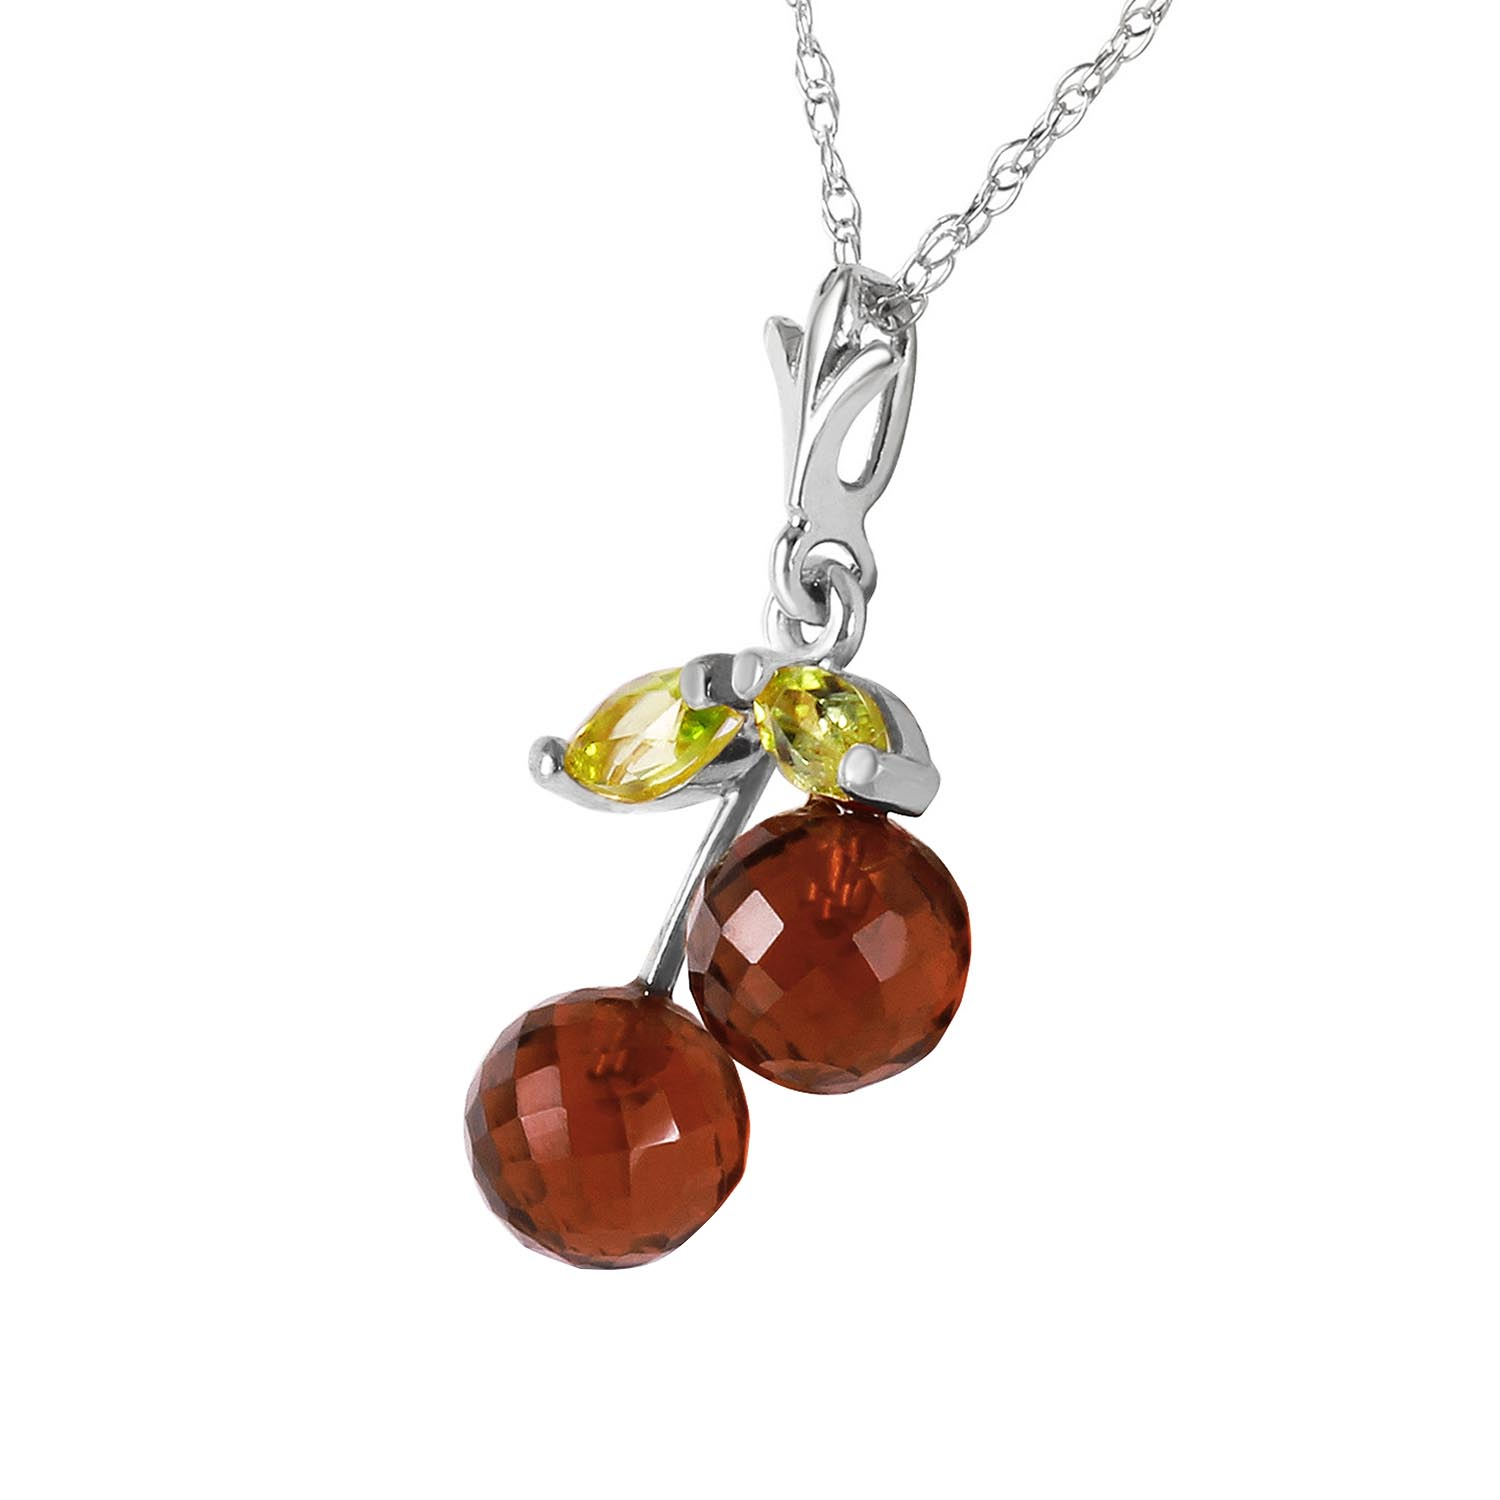 Garnet and Peridot Cherry Drop Pendant Necklace 1.45ctw in 9ct White Gold